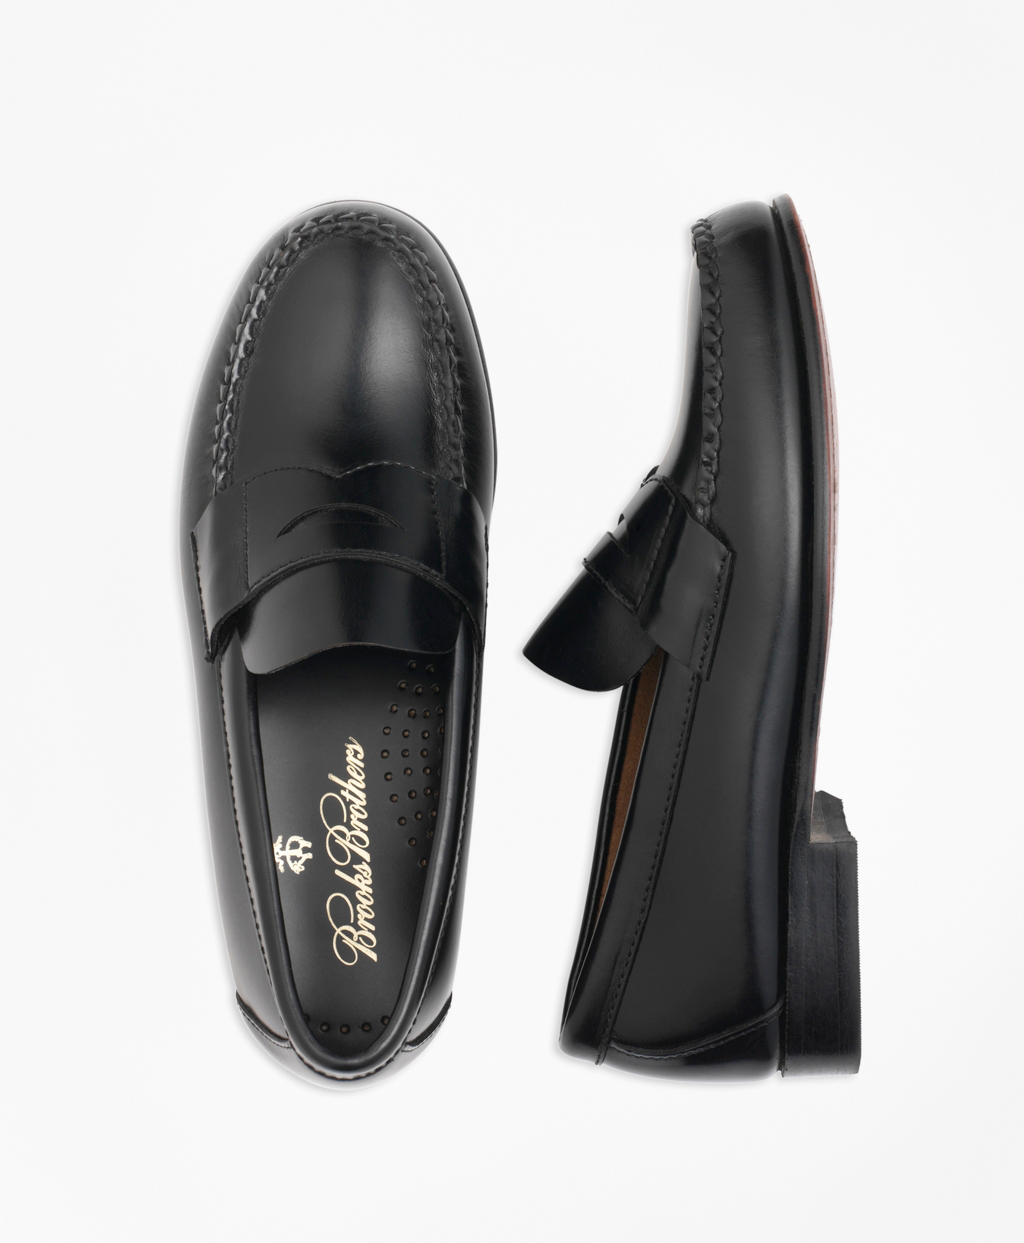 ring bearer shoes black leather penny loafers